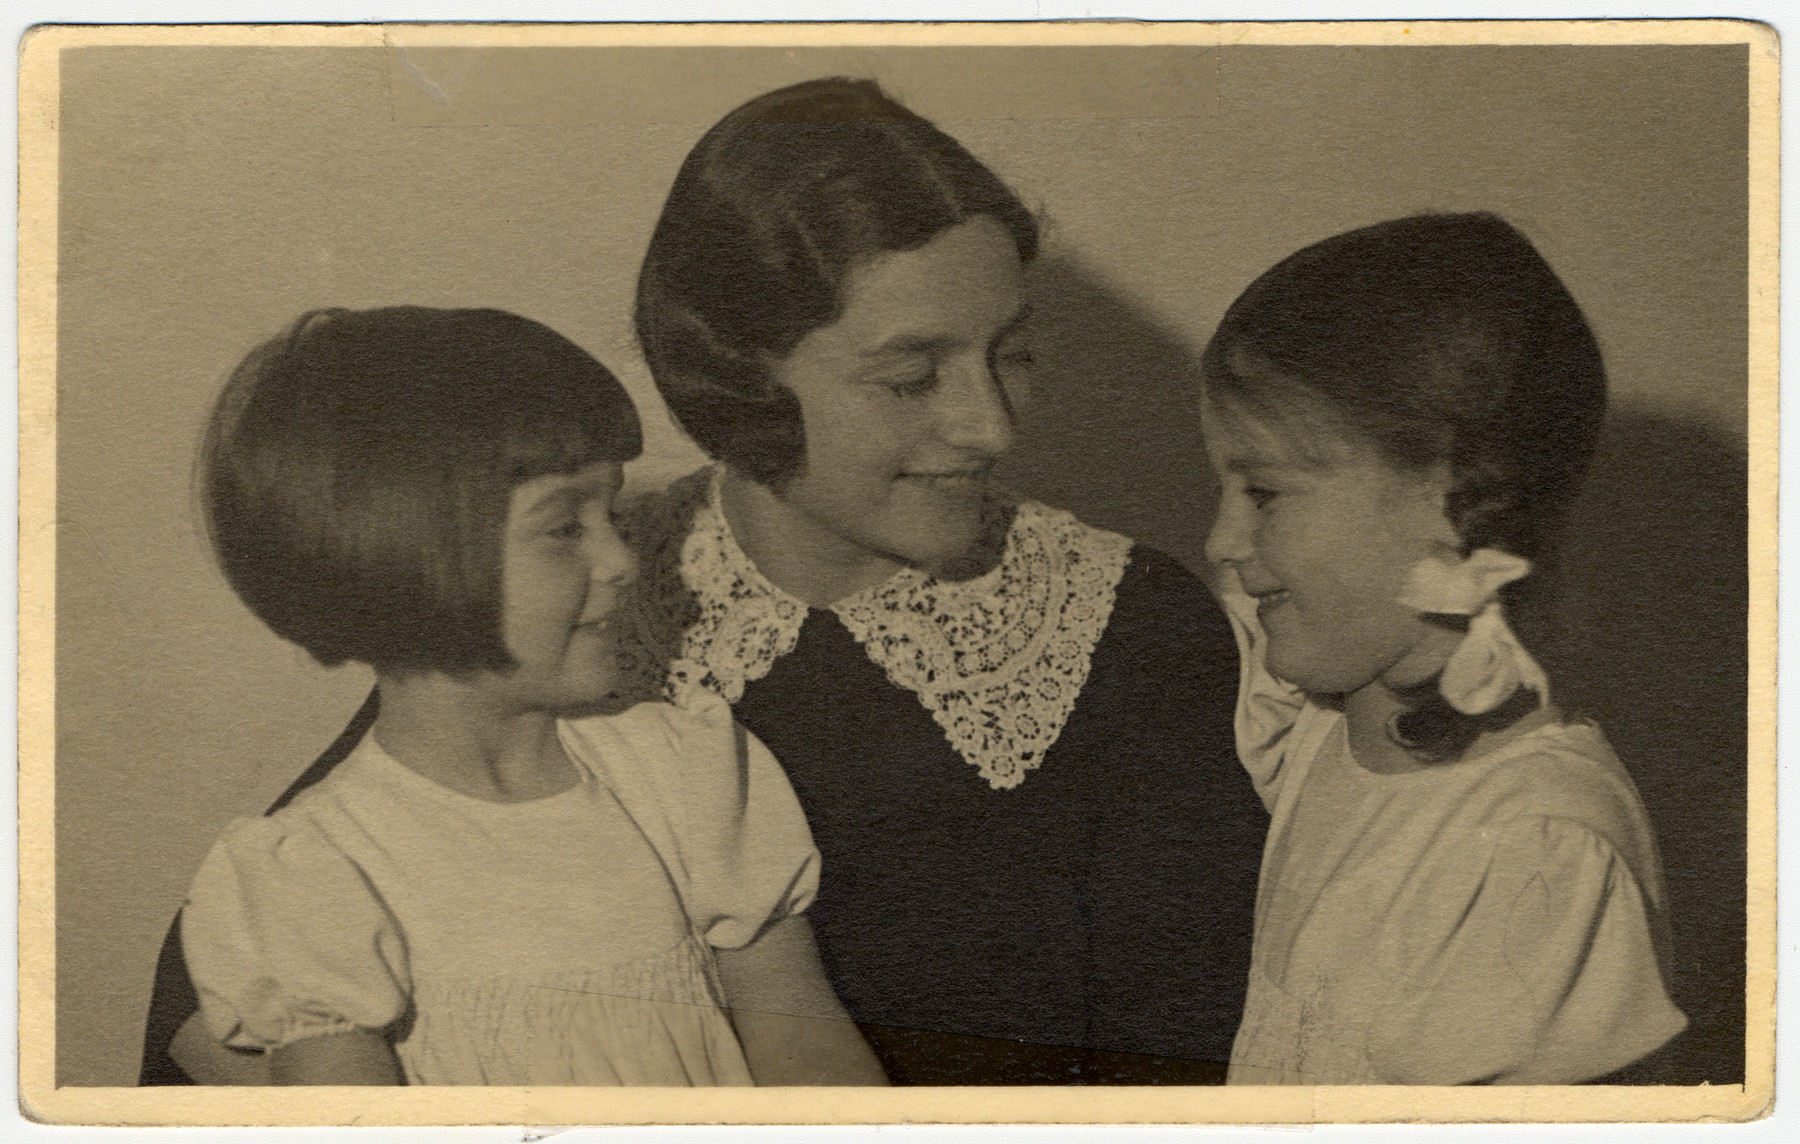 Studio portrait of Elisabeth Sonheimer and her two daughters, Hannah and Marian.